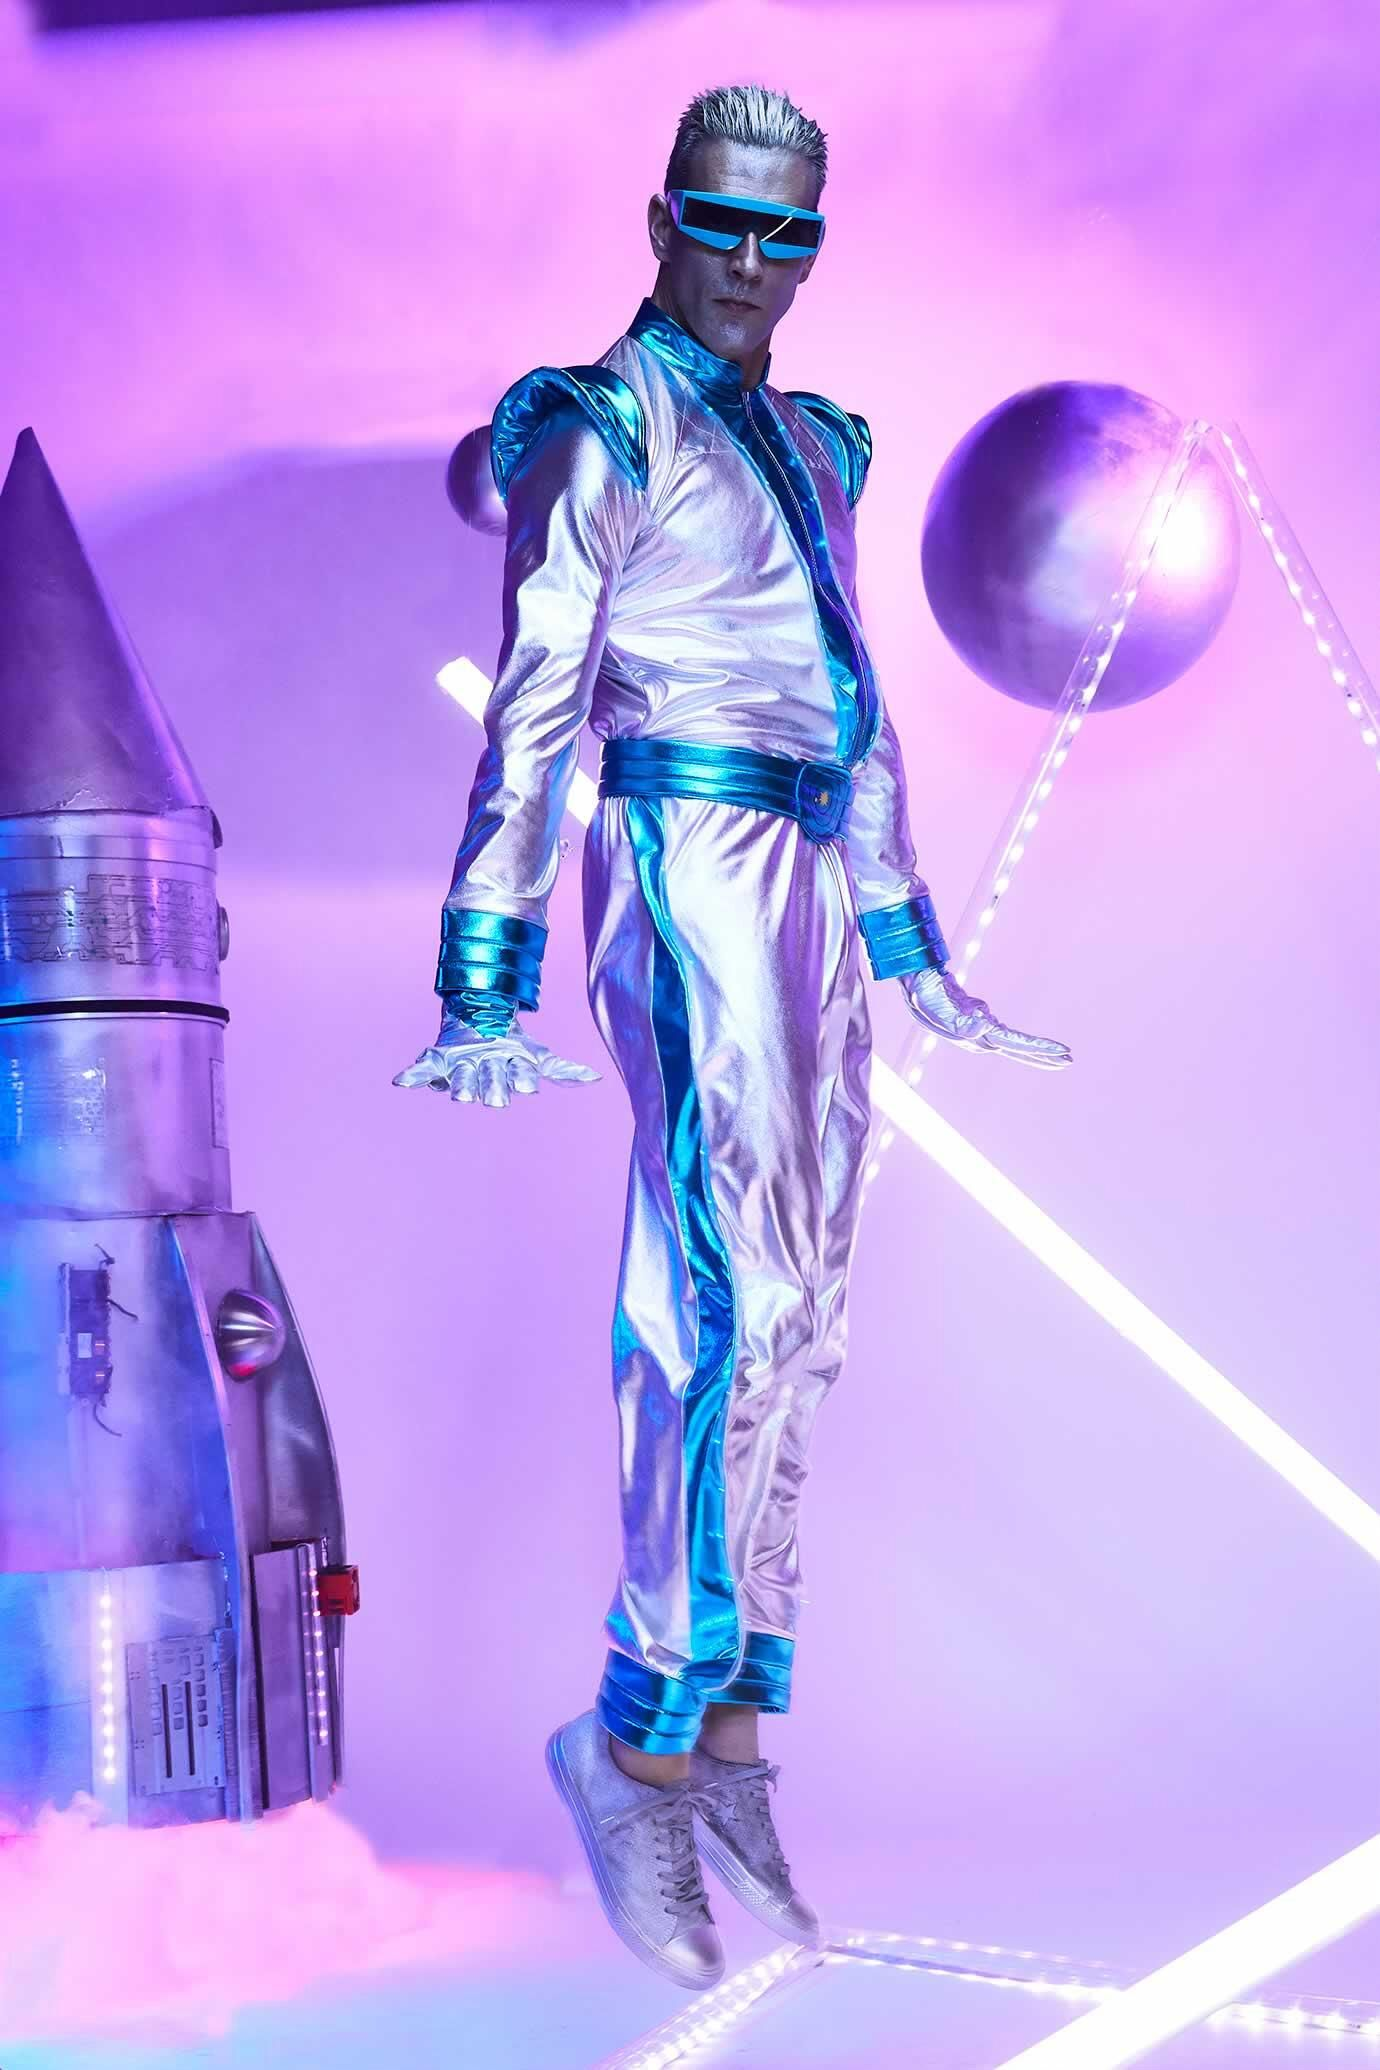 Lightup space suit costume for men space suit costume